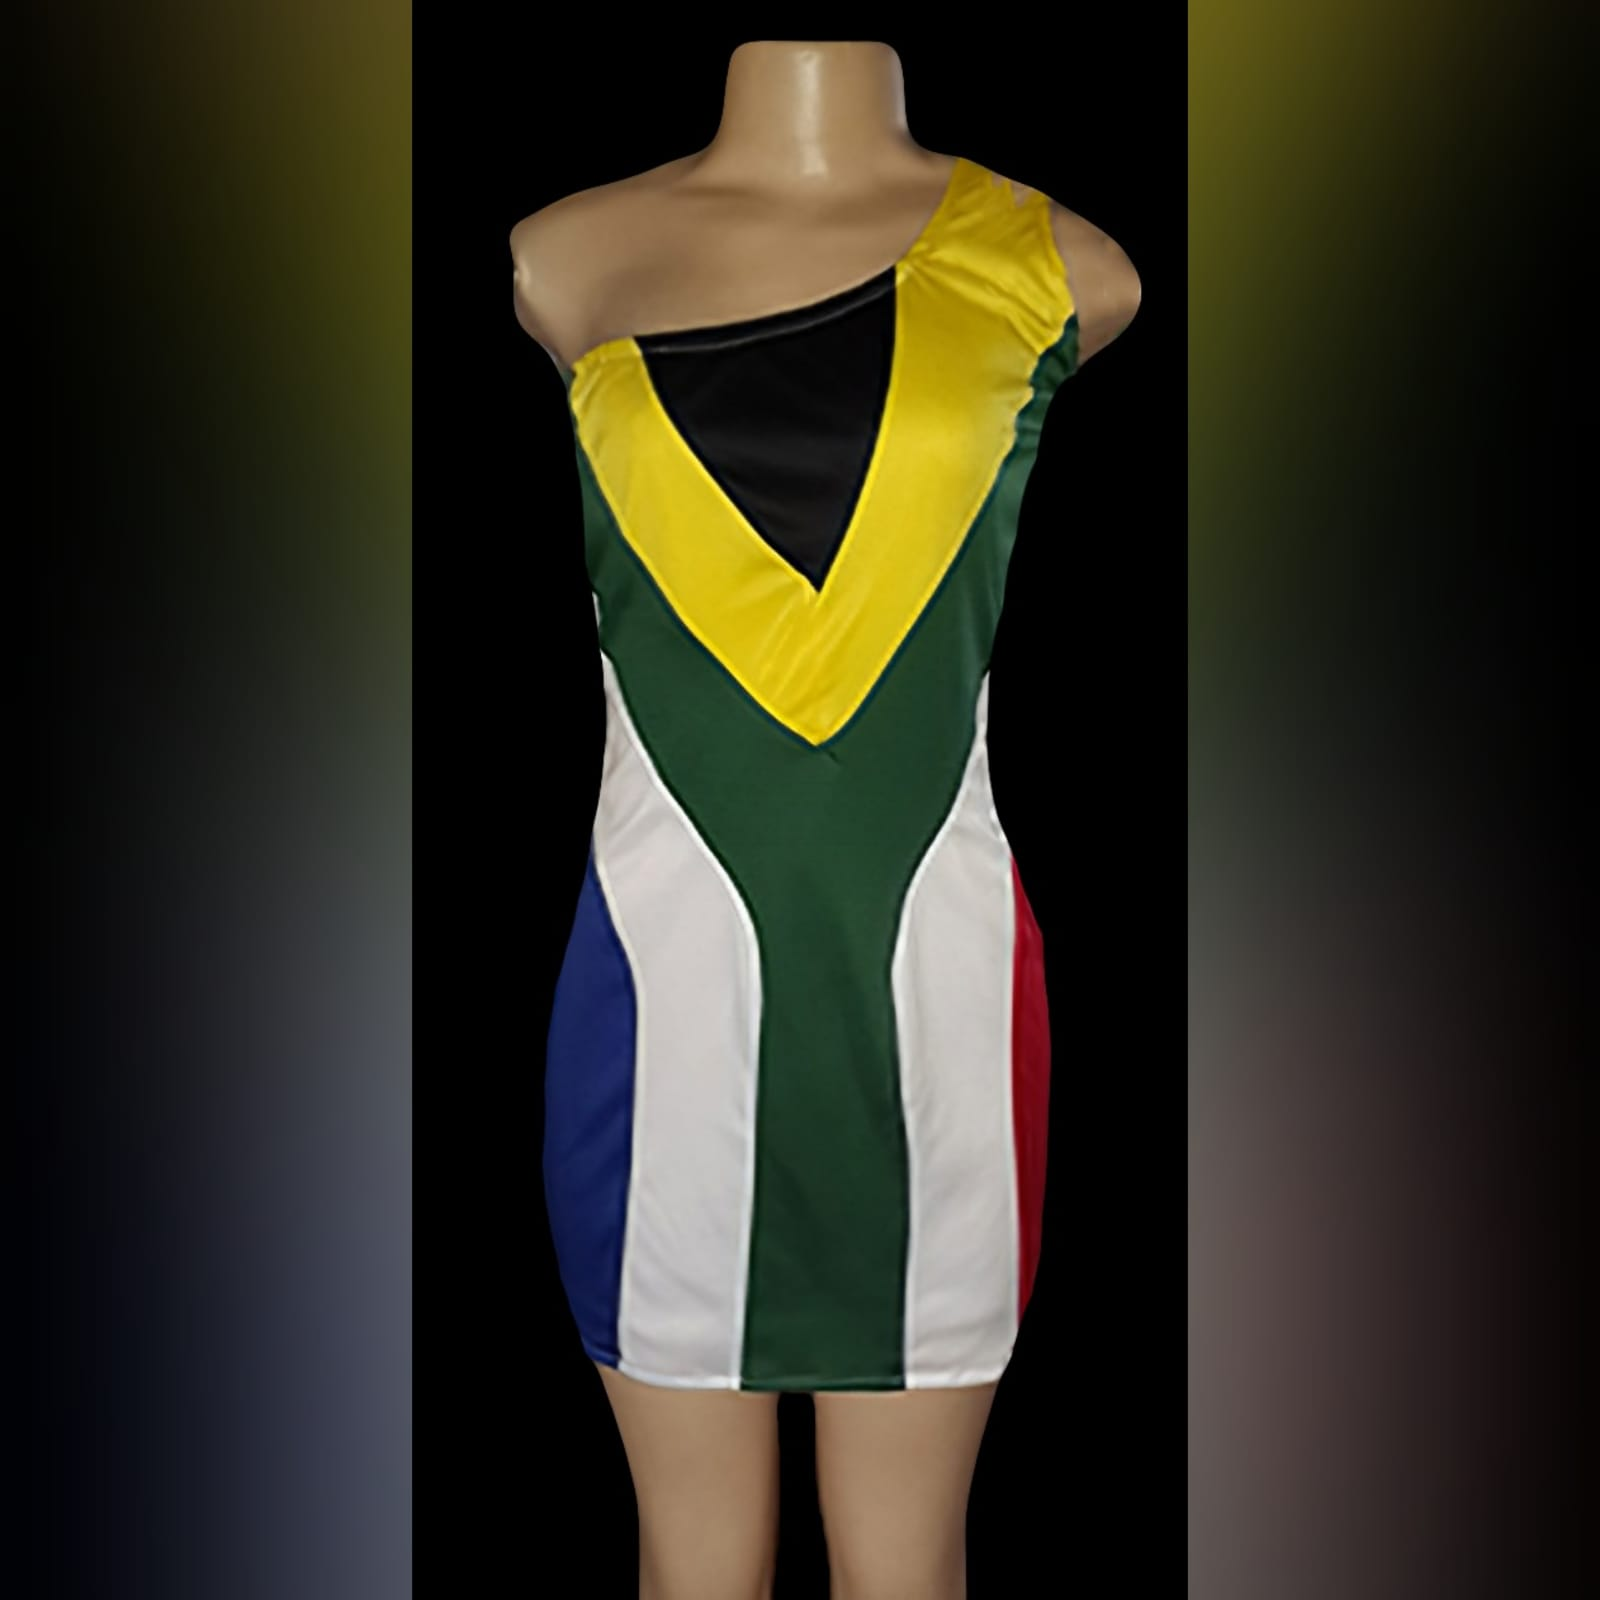 South african flag dress with single shoulder 3 a stretchy, south african mini dress with a single shoulder. Dress with and without sequins. Designed and made for a client in the uk.